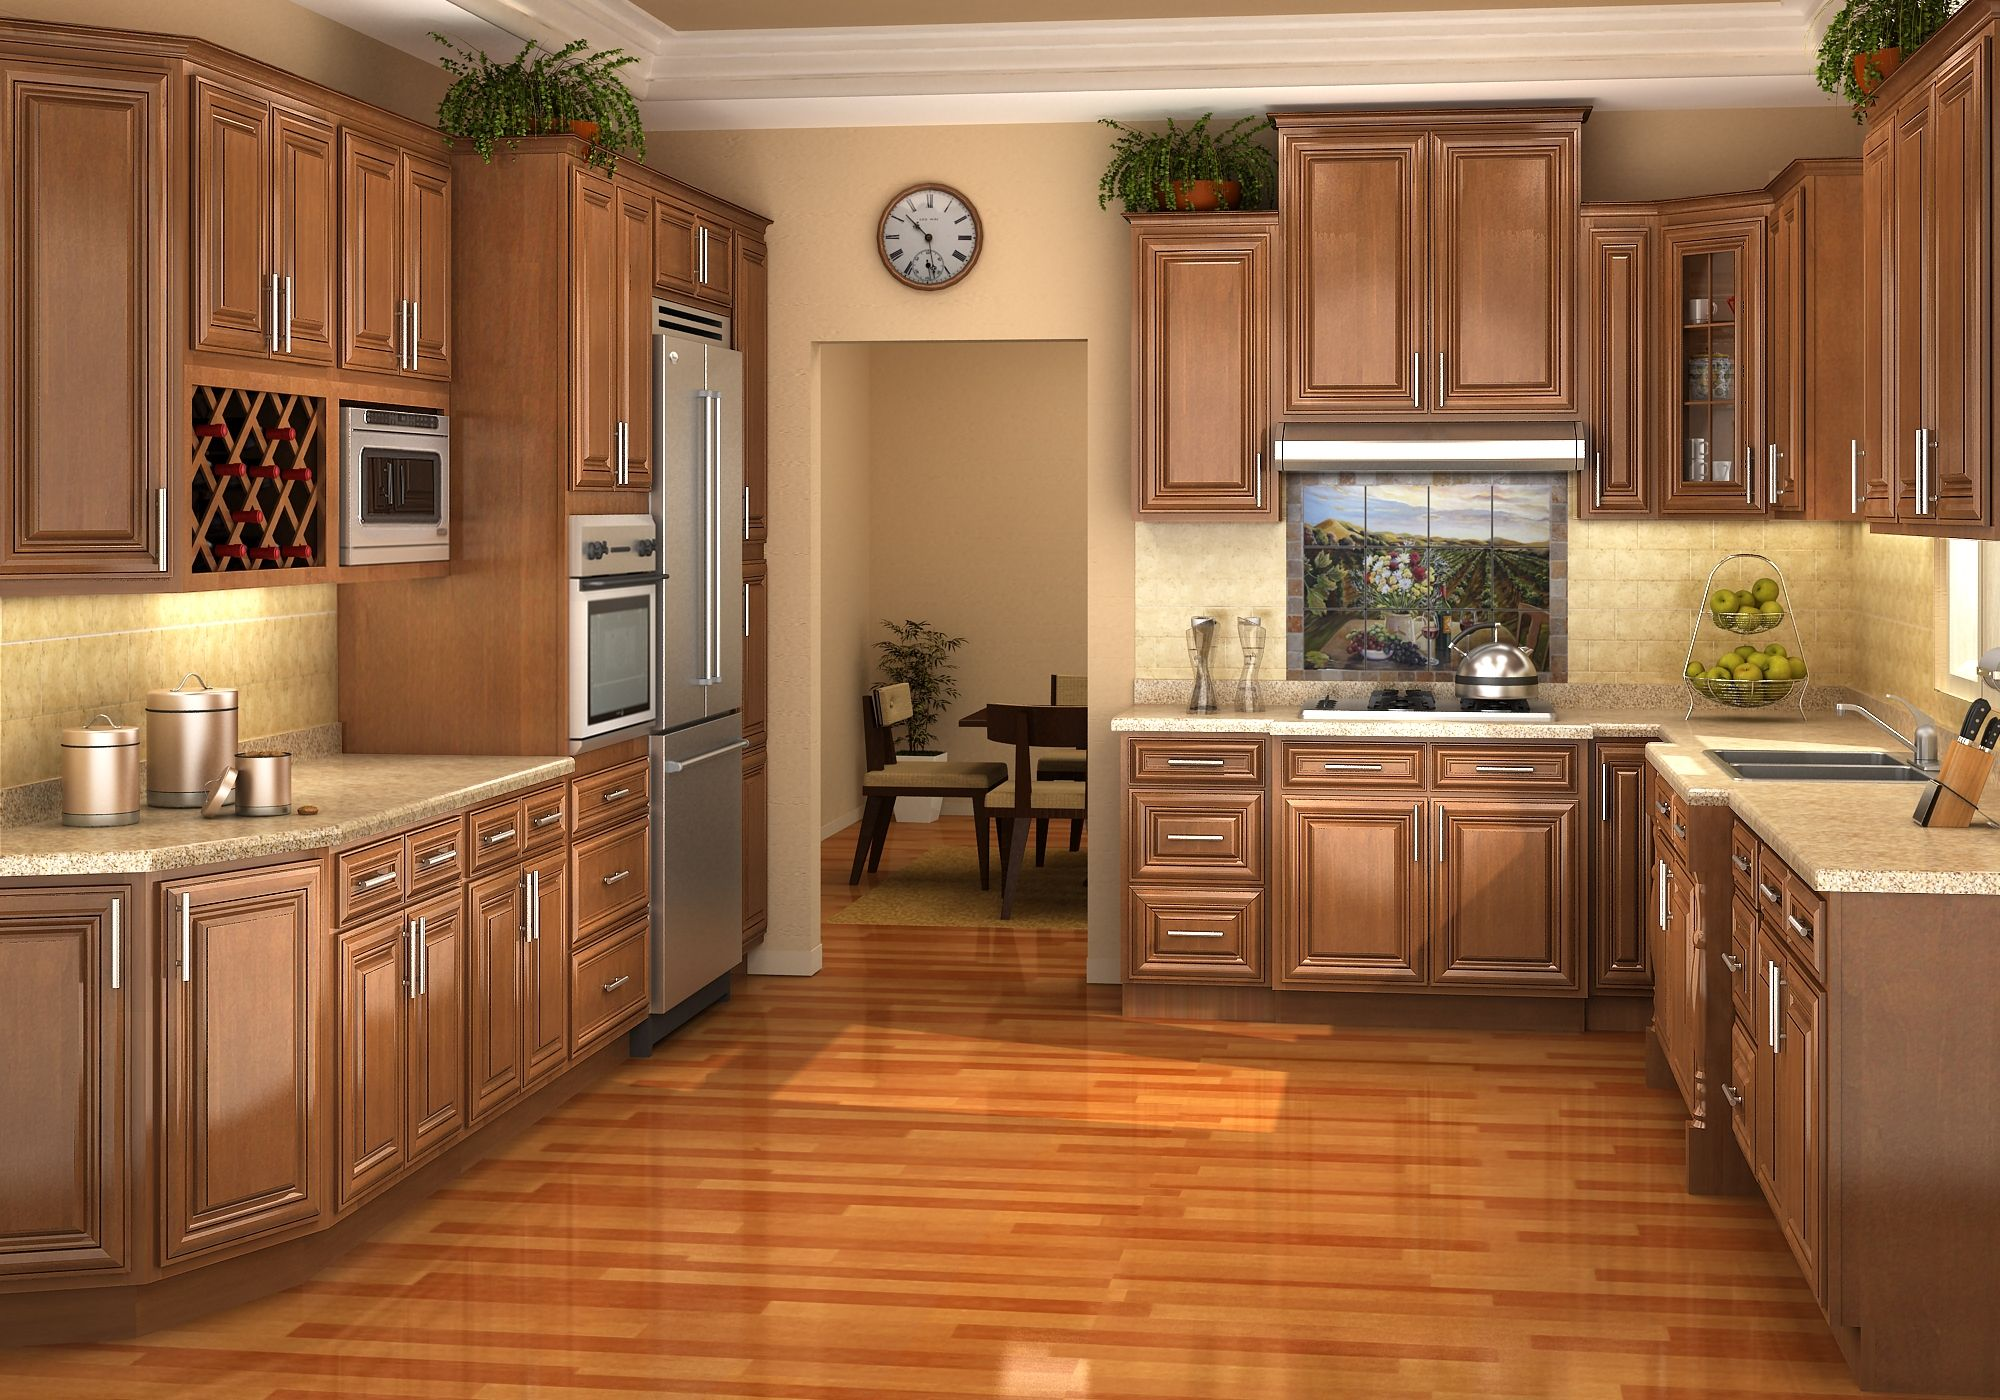 Updating old oak kitchen cabinets garecscleaningsystems